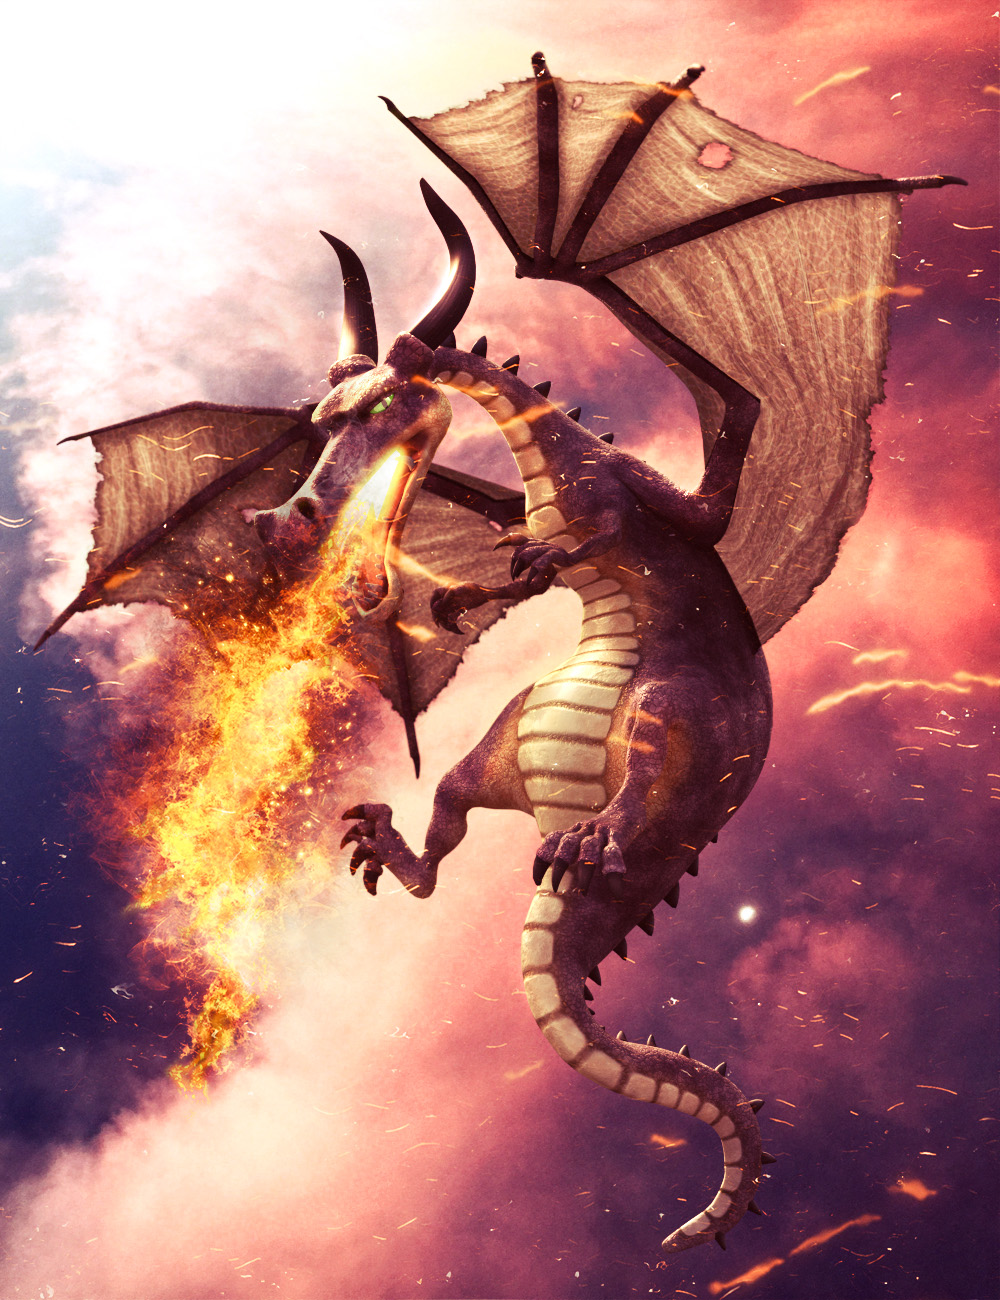 Mythical Dragon for Daz Dragon 3 by: 3D Universe, 3D Models by Daz 3D